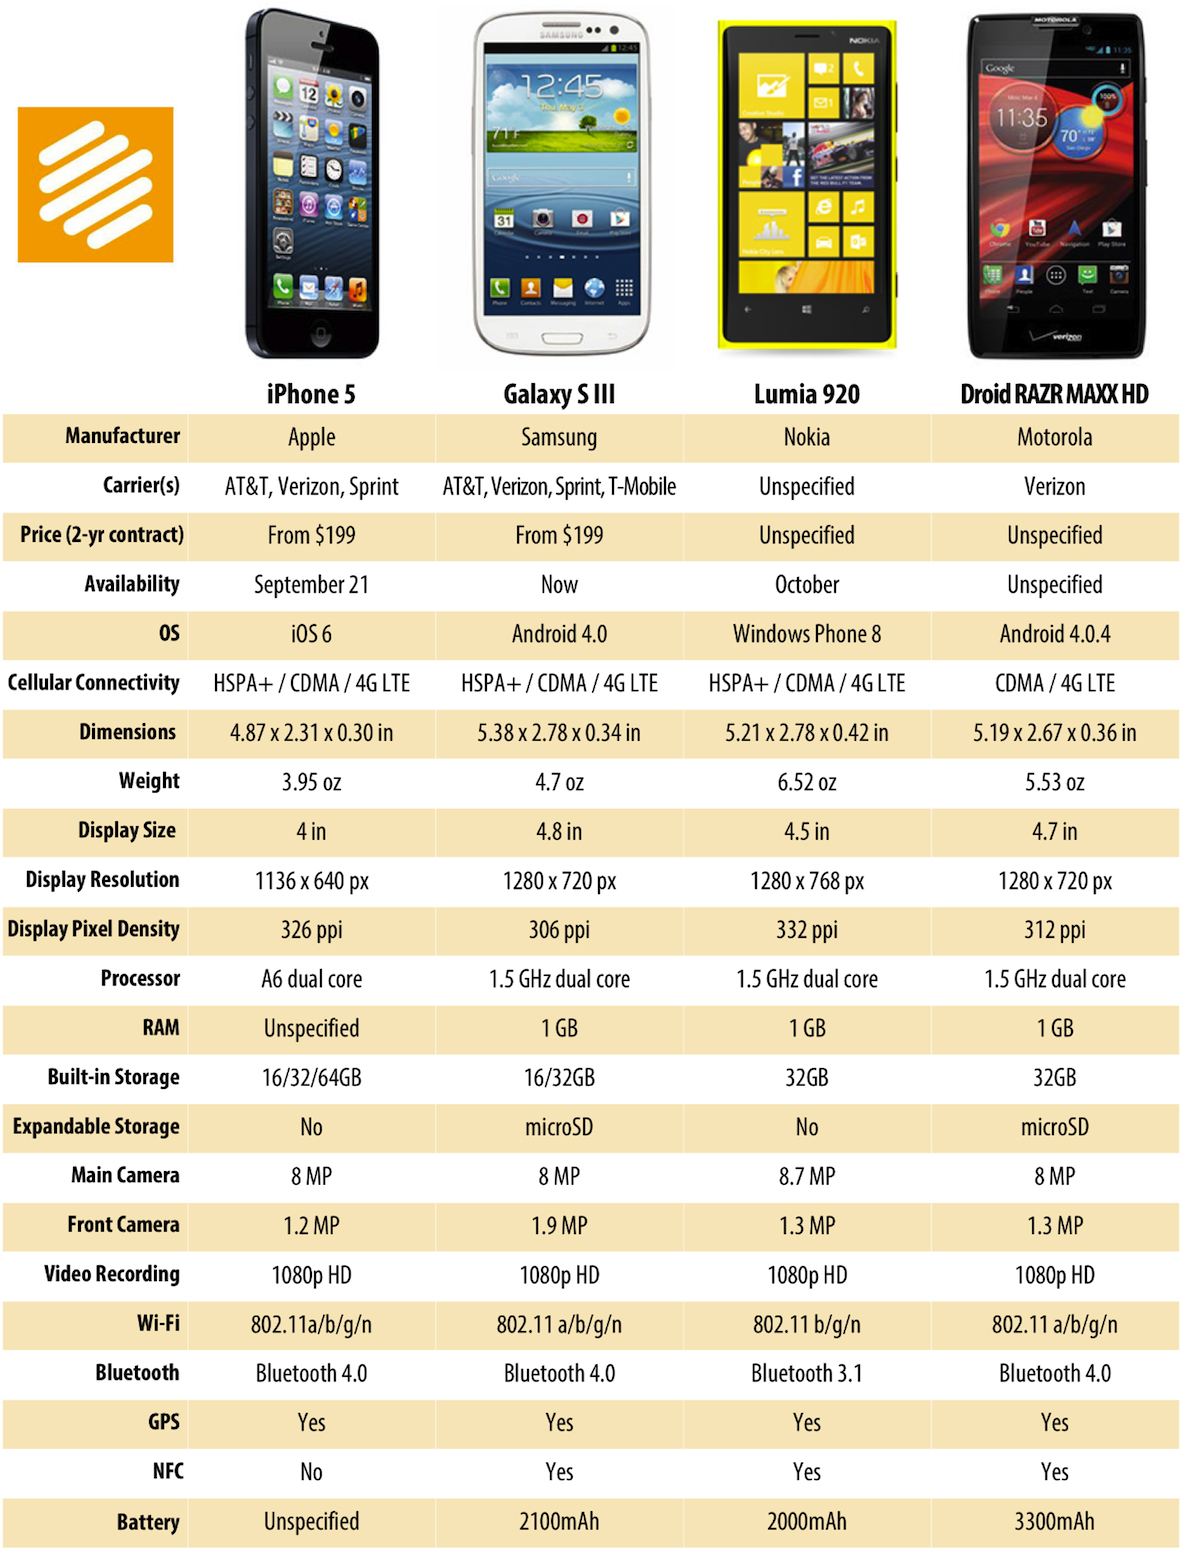 Tabela comparativa do iPhone 5